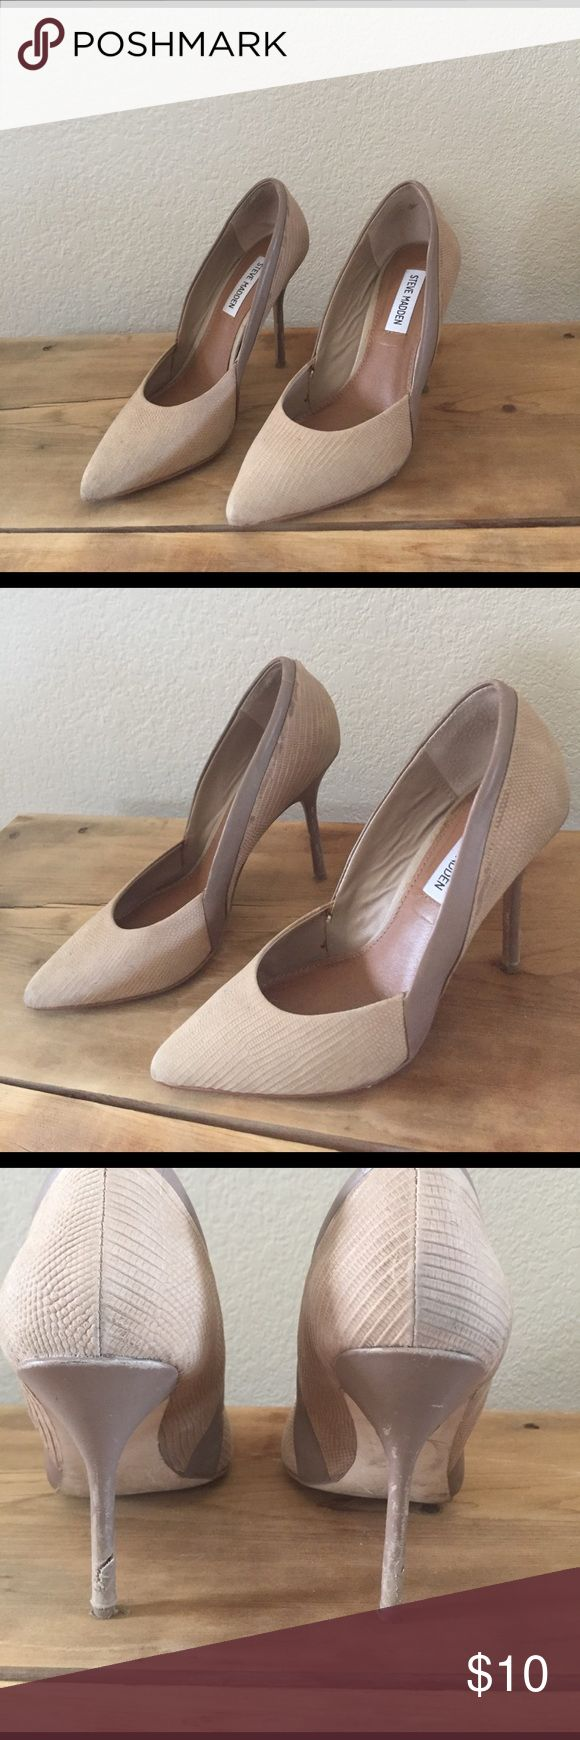 Steve Madden Pump Steve Madden pumps in nude. Pumps have been worn quite a bit and do have damage priced according please see pictures. Steve Madden Shoes Heels